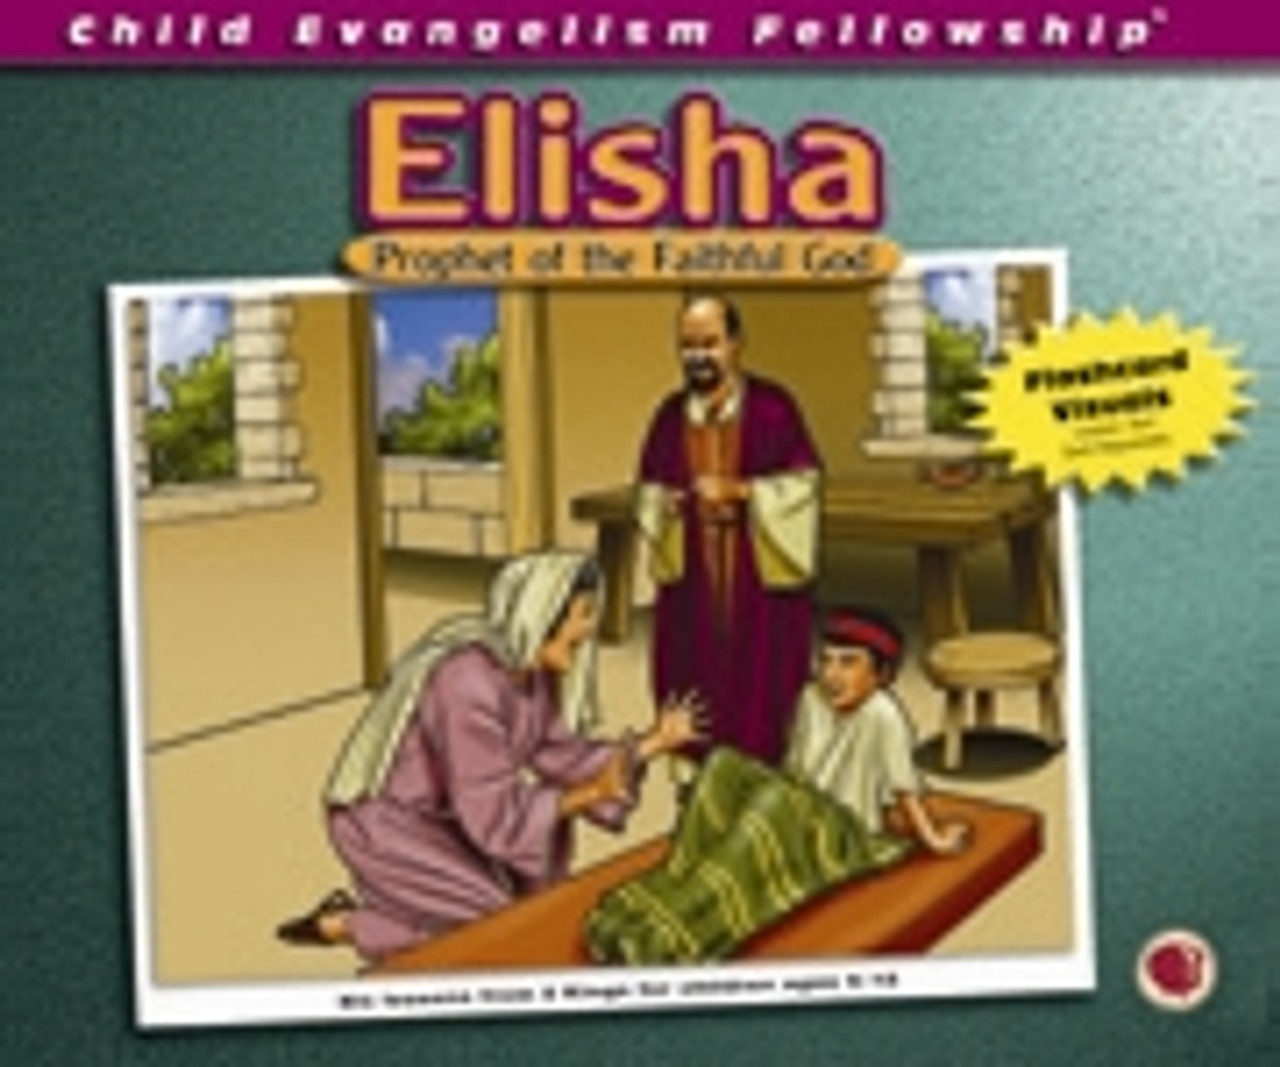 Elisha: Prophet of the Faithful God (flashcard)